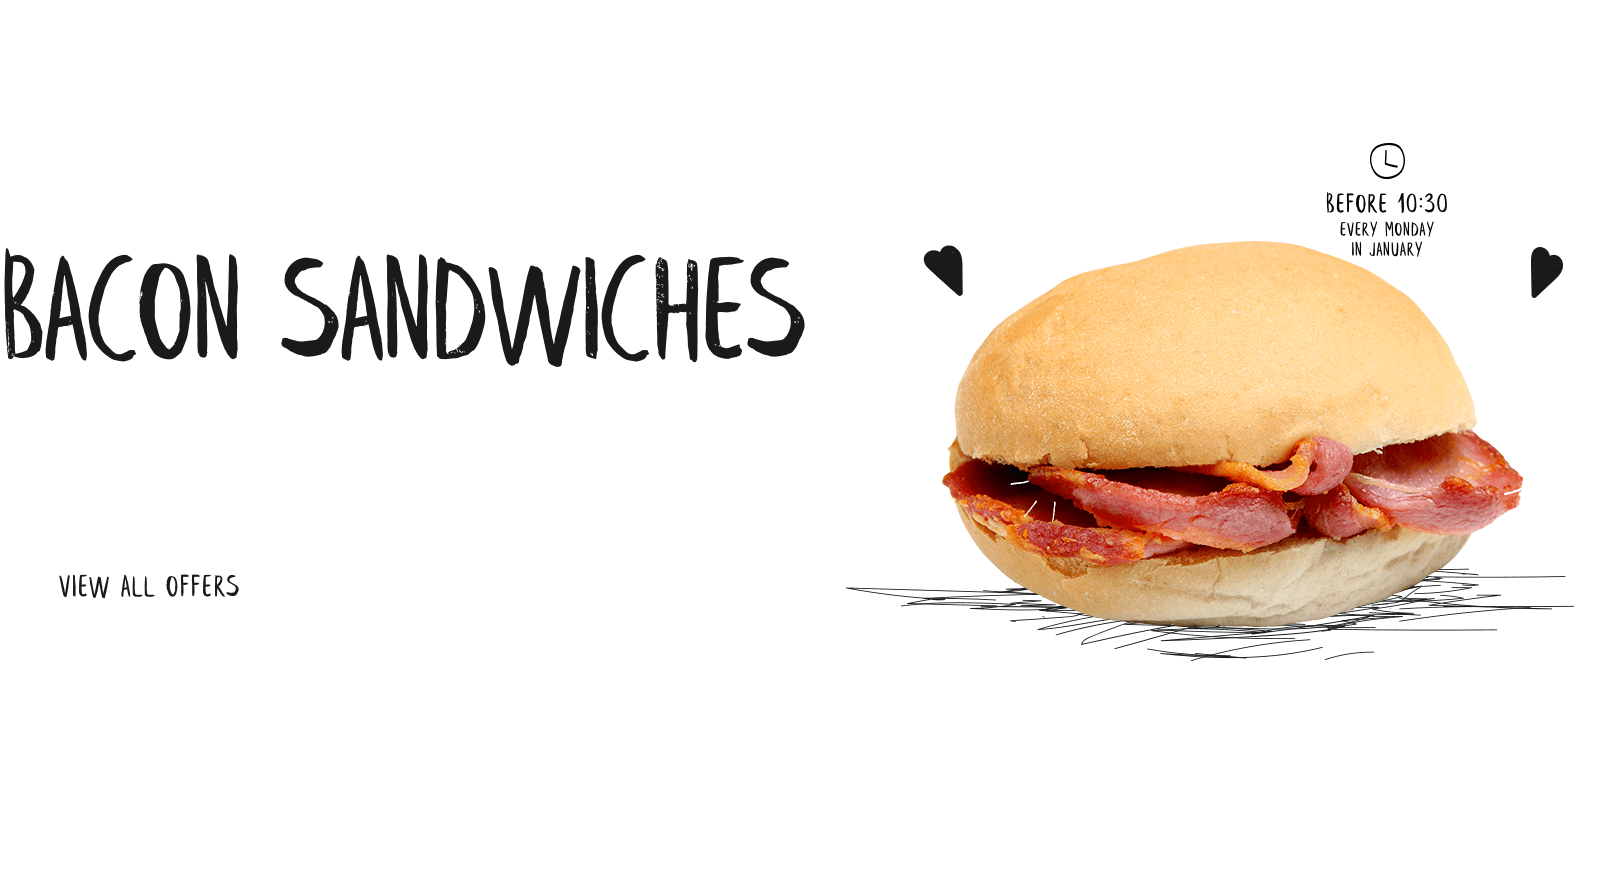 Bacon sandwiches only £2.00